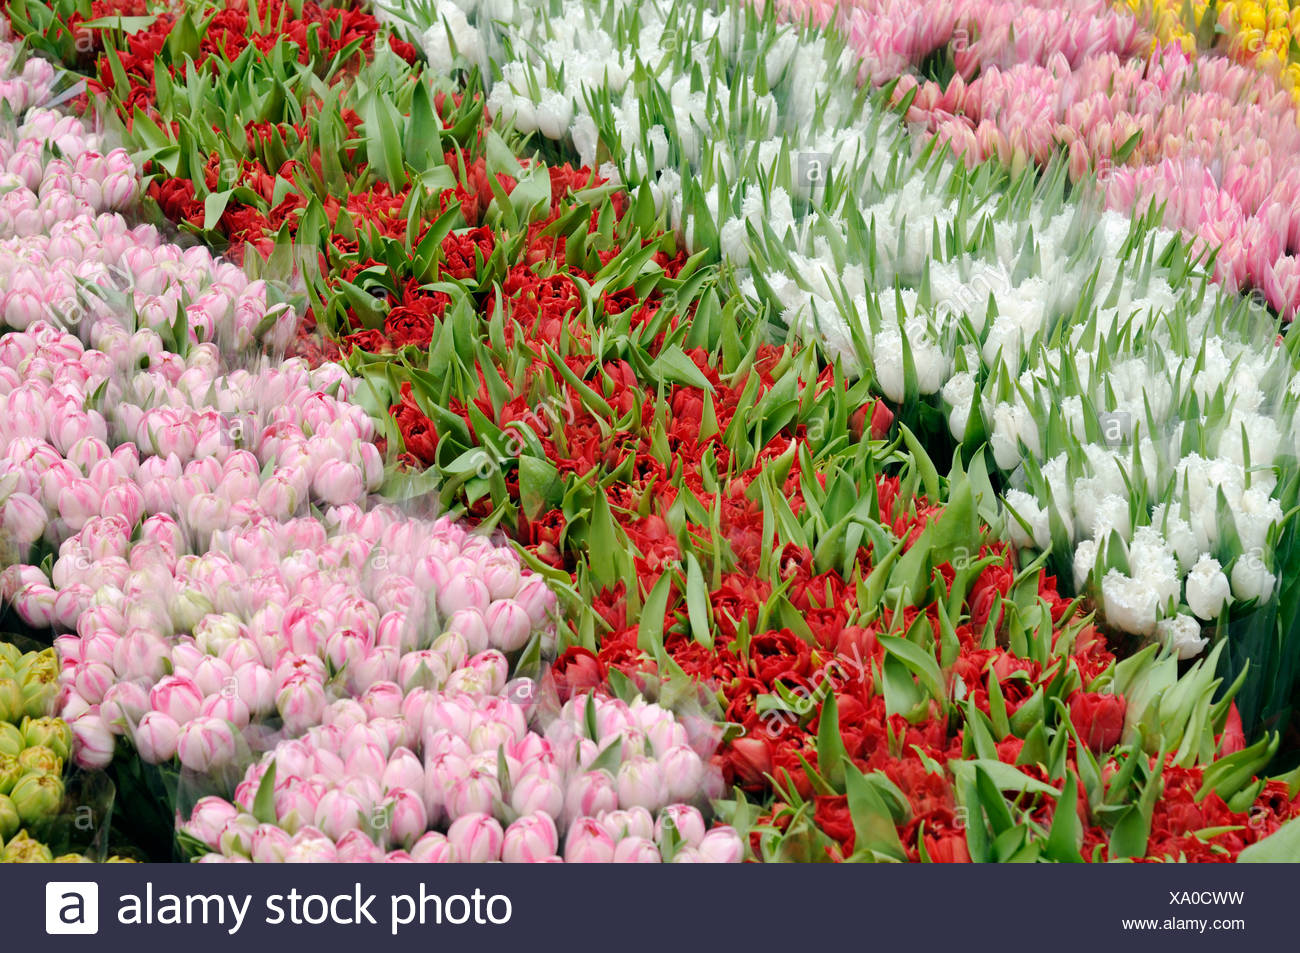 Cut flowers sold at a flower market, pink, red, white and yellow tulips (Tulipa) - Stock Image